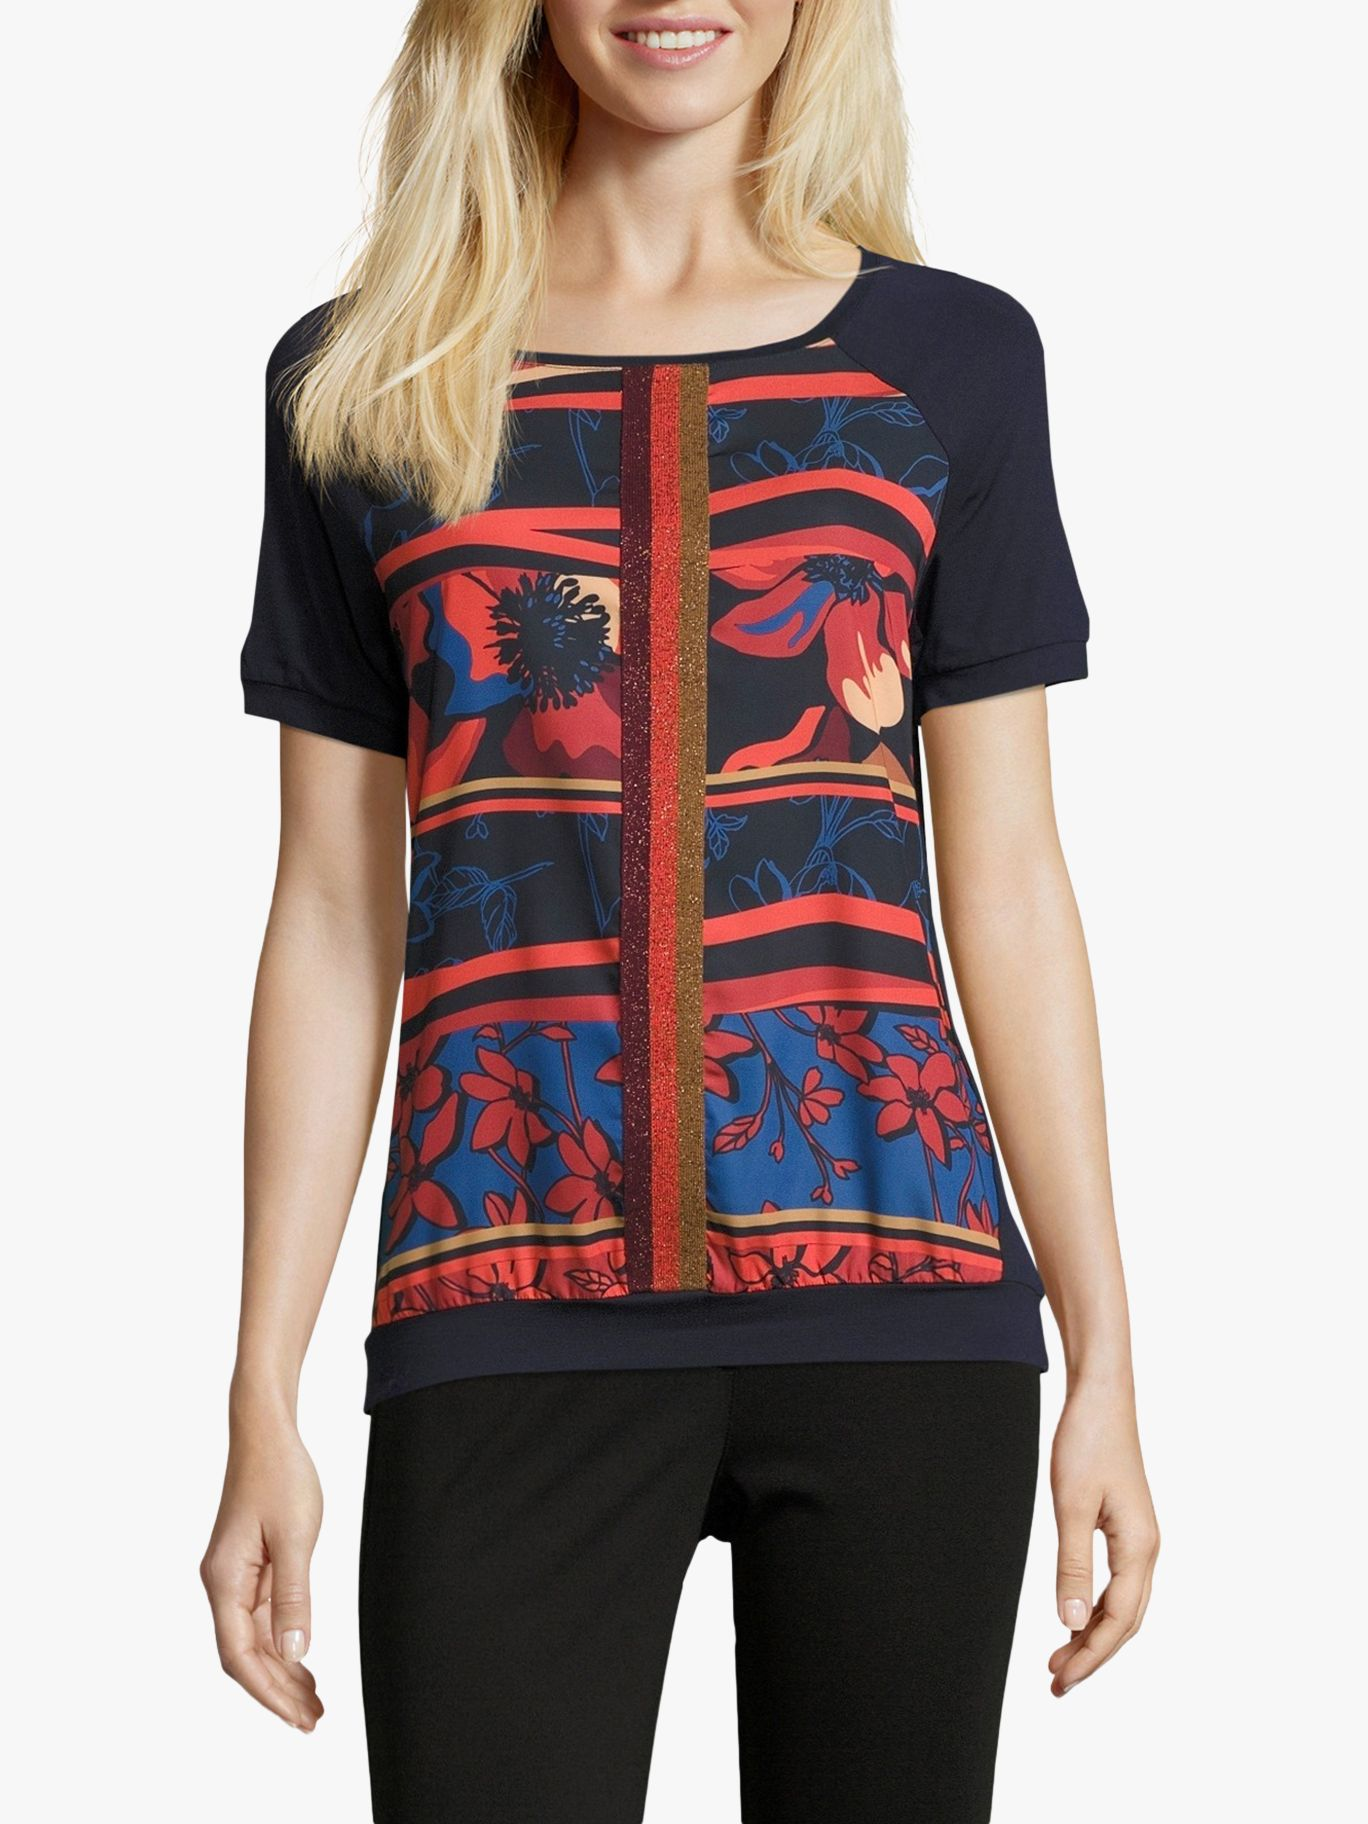 Betty Barclay Betty Barclay Floral Print Top, Dark Blue/Red